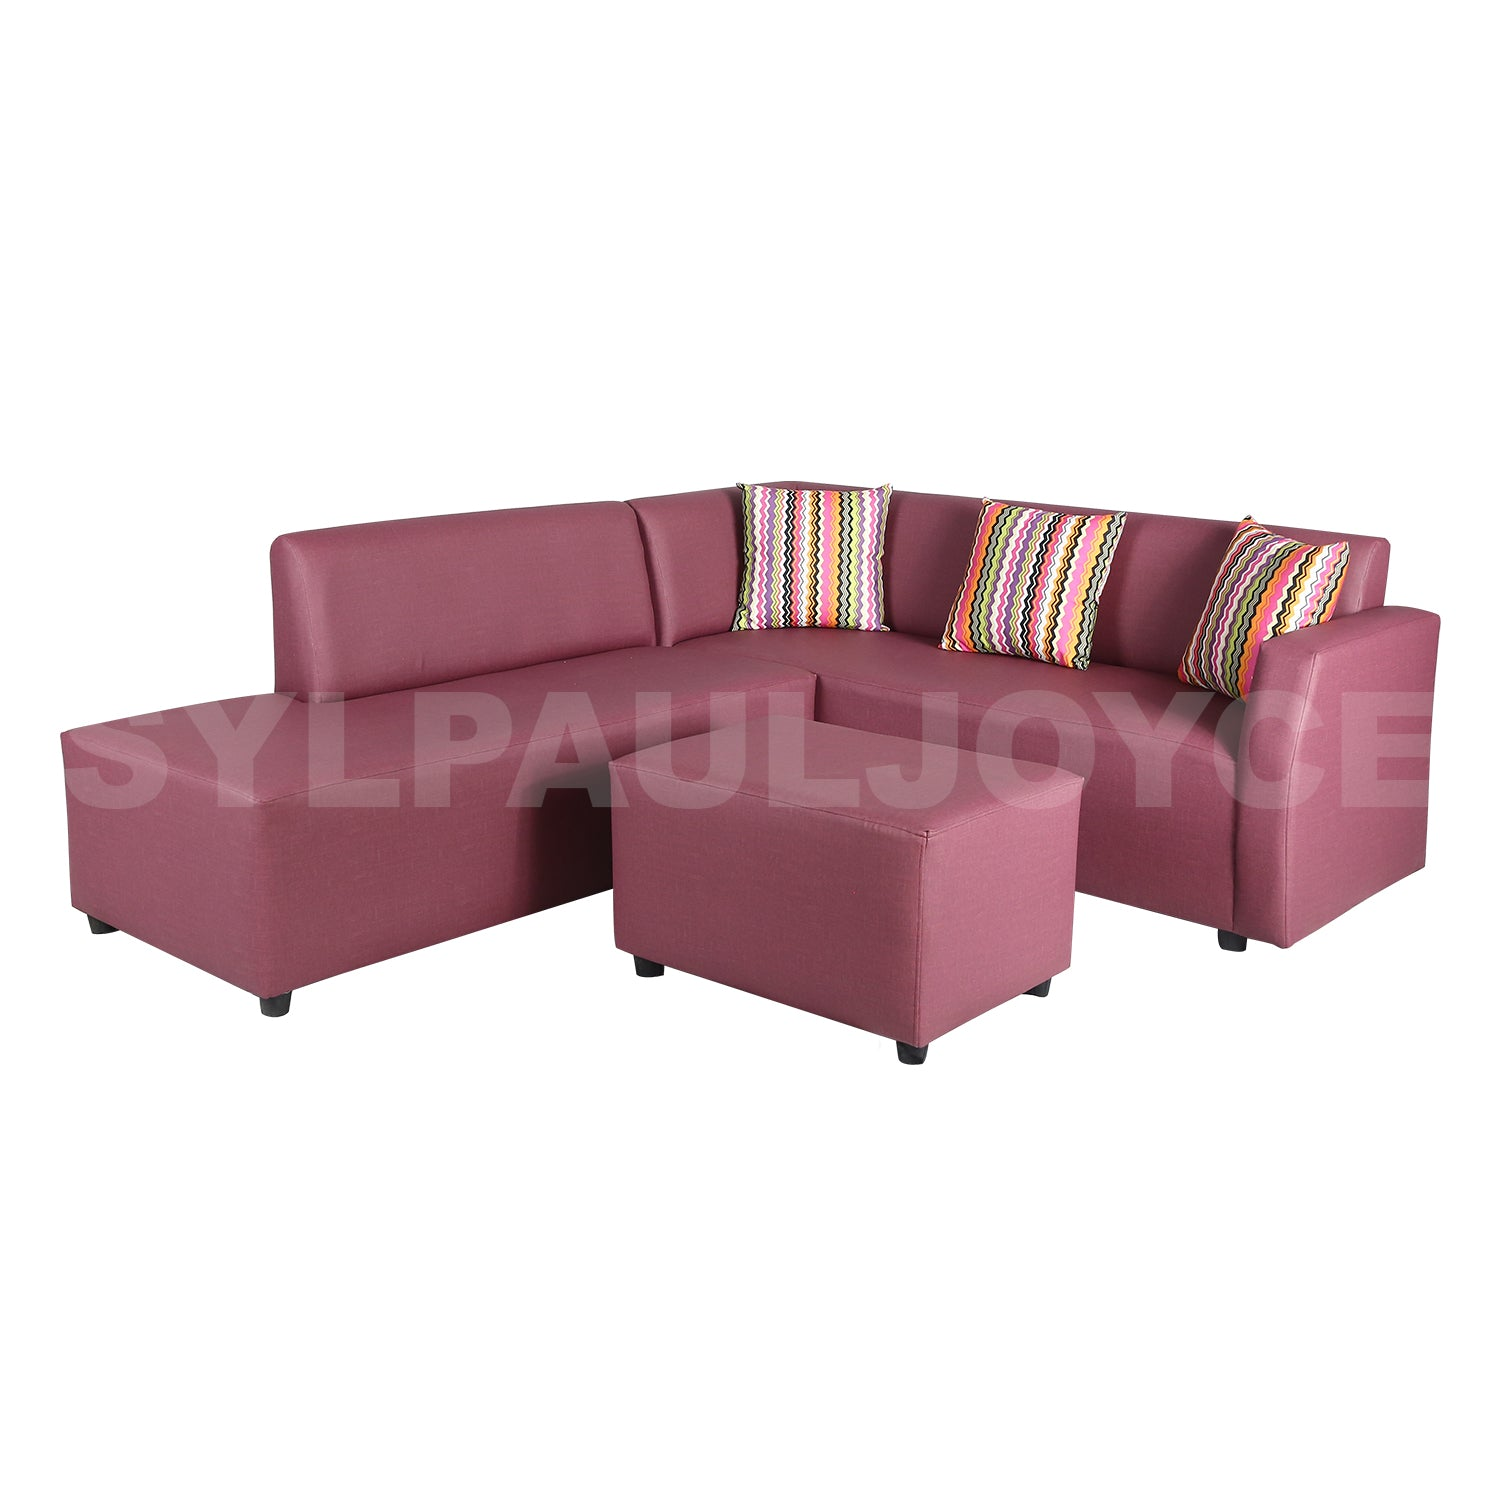 James Corner Sofa with Stool